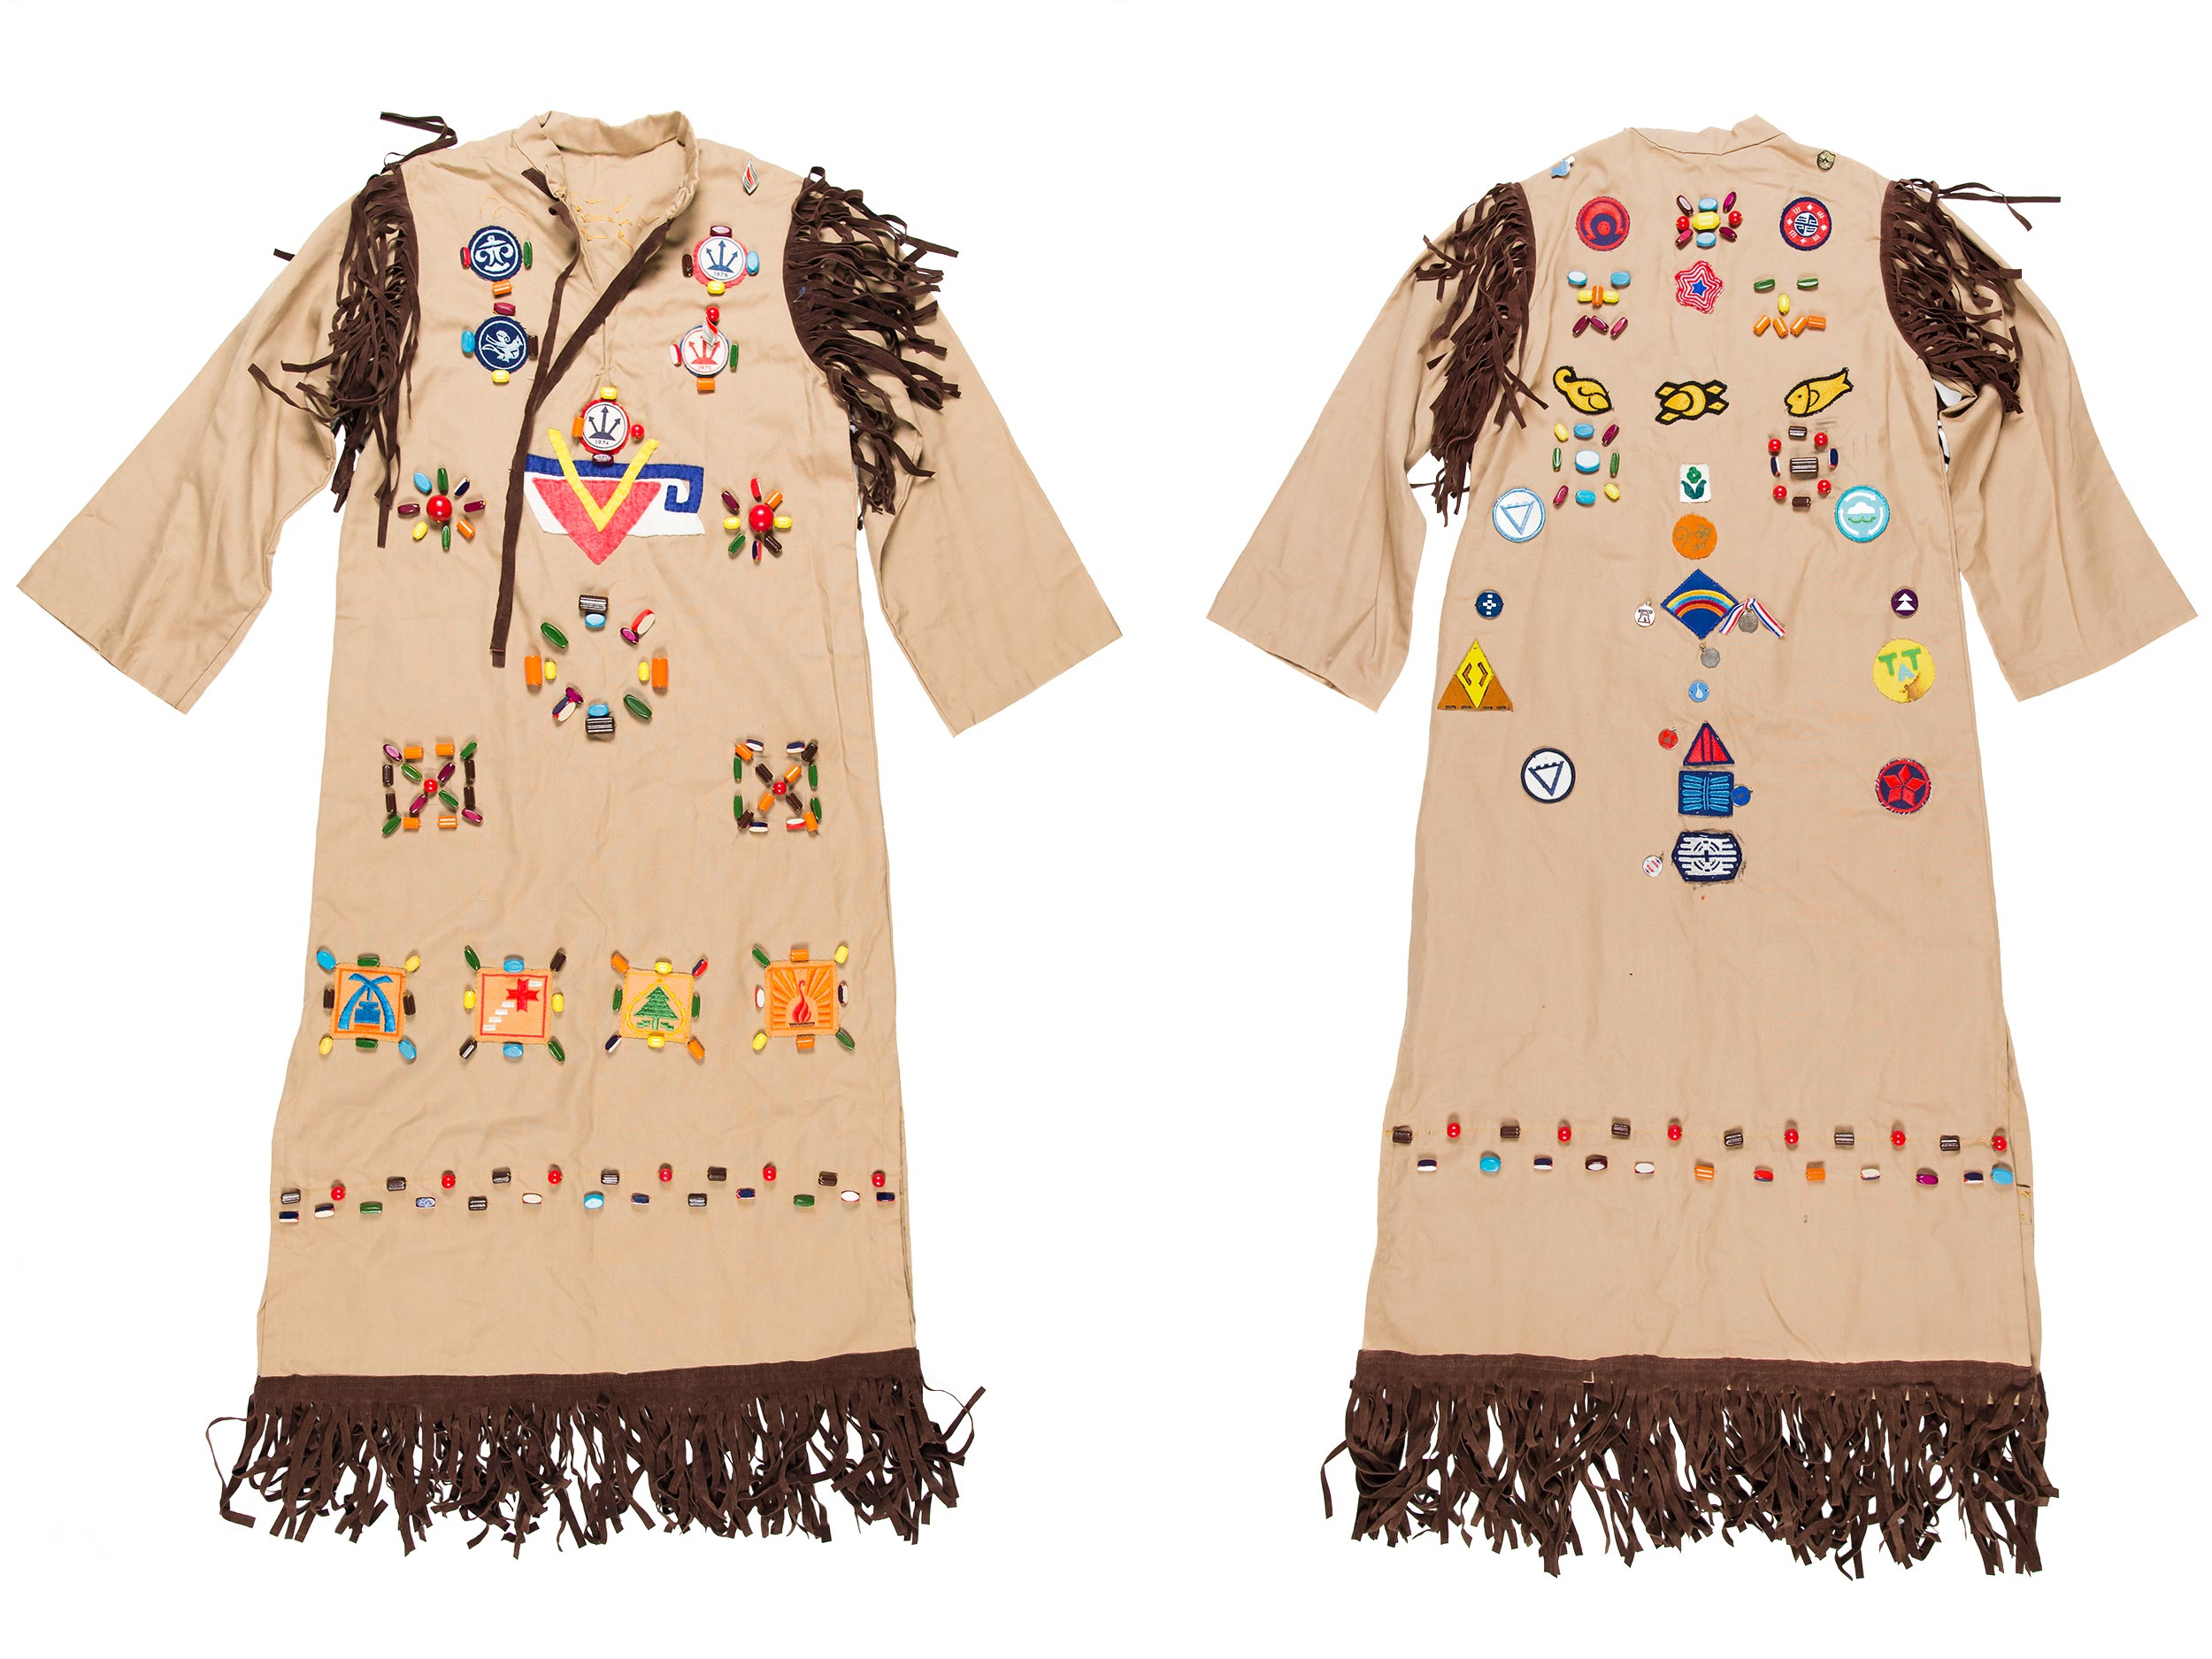 Camp Fire Girls dress, 1973